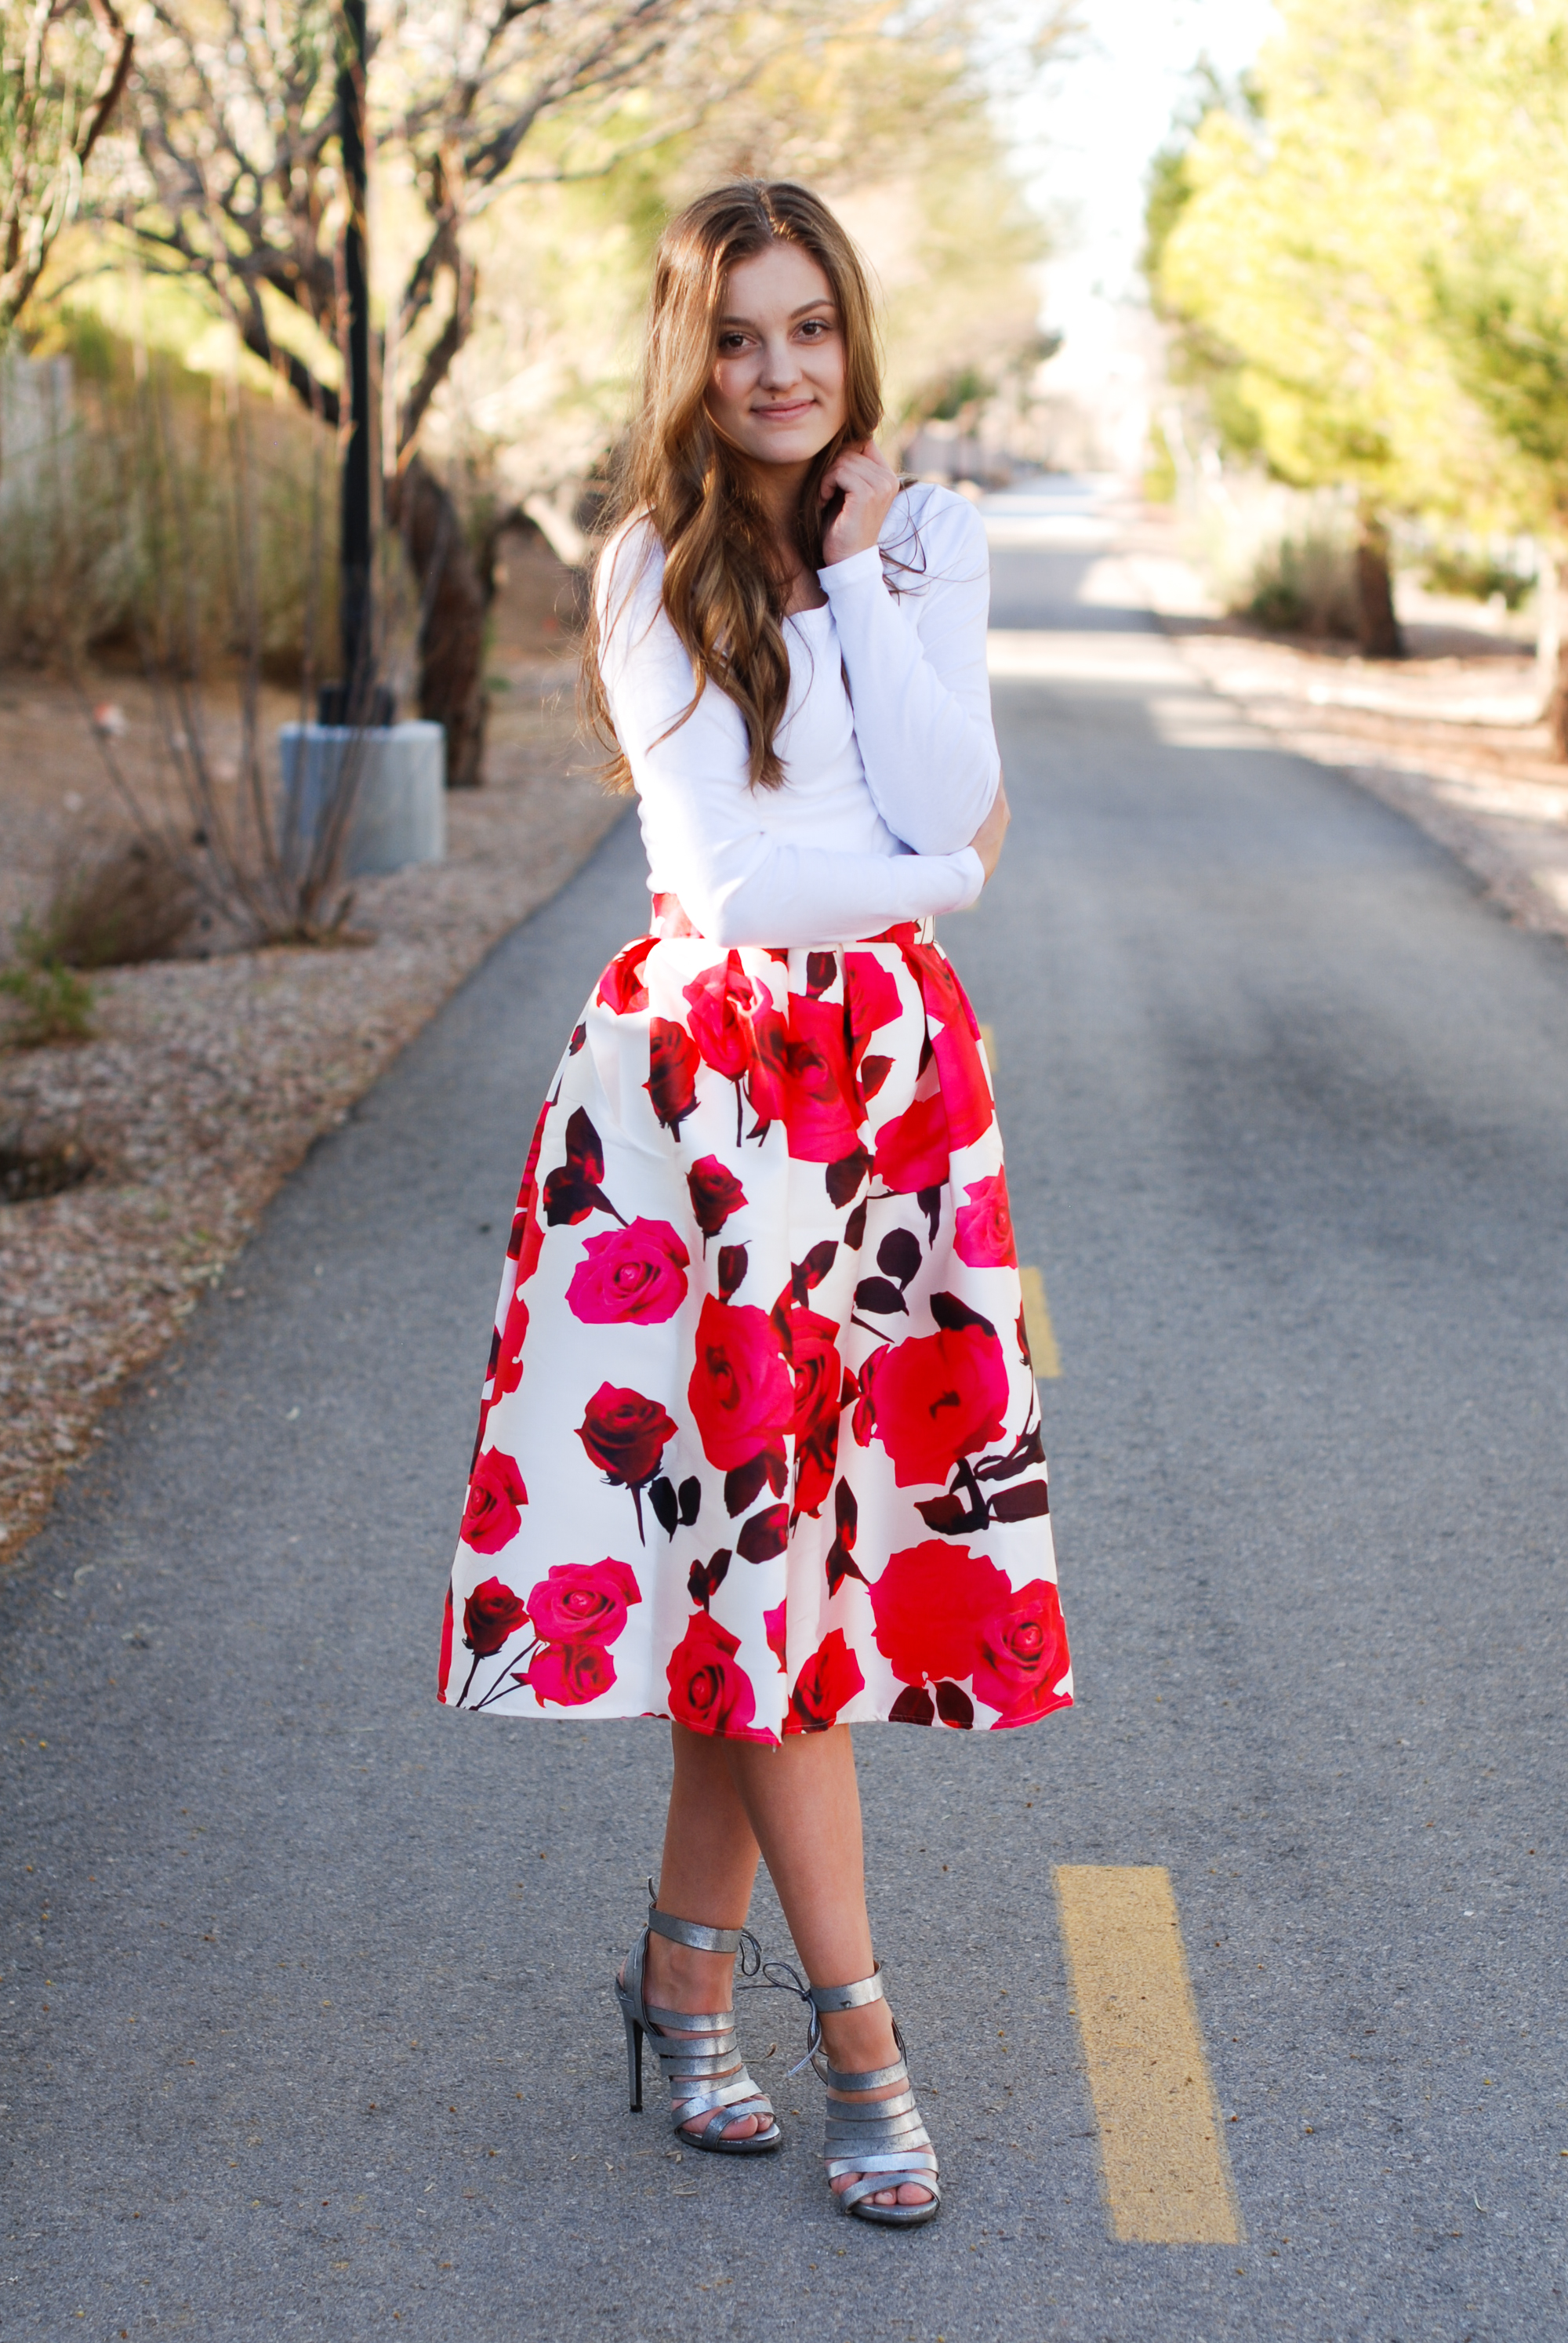 be-mine-vday-valentineoutfit-outfitinspo-sincerely-halesbe-mine-vday-valentineoutfit-outfitinspo-sincerely-hales